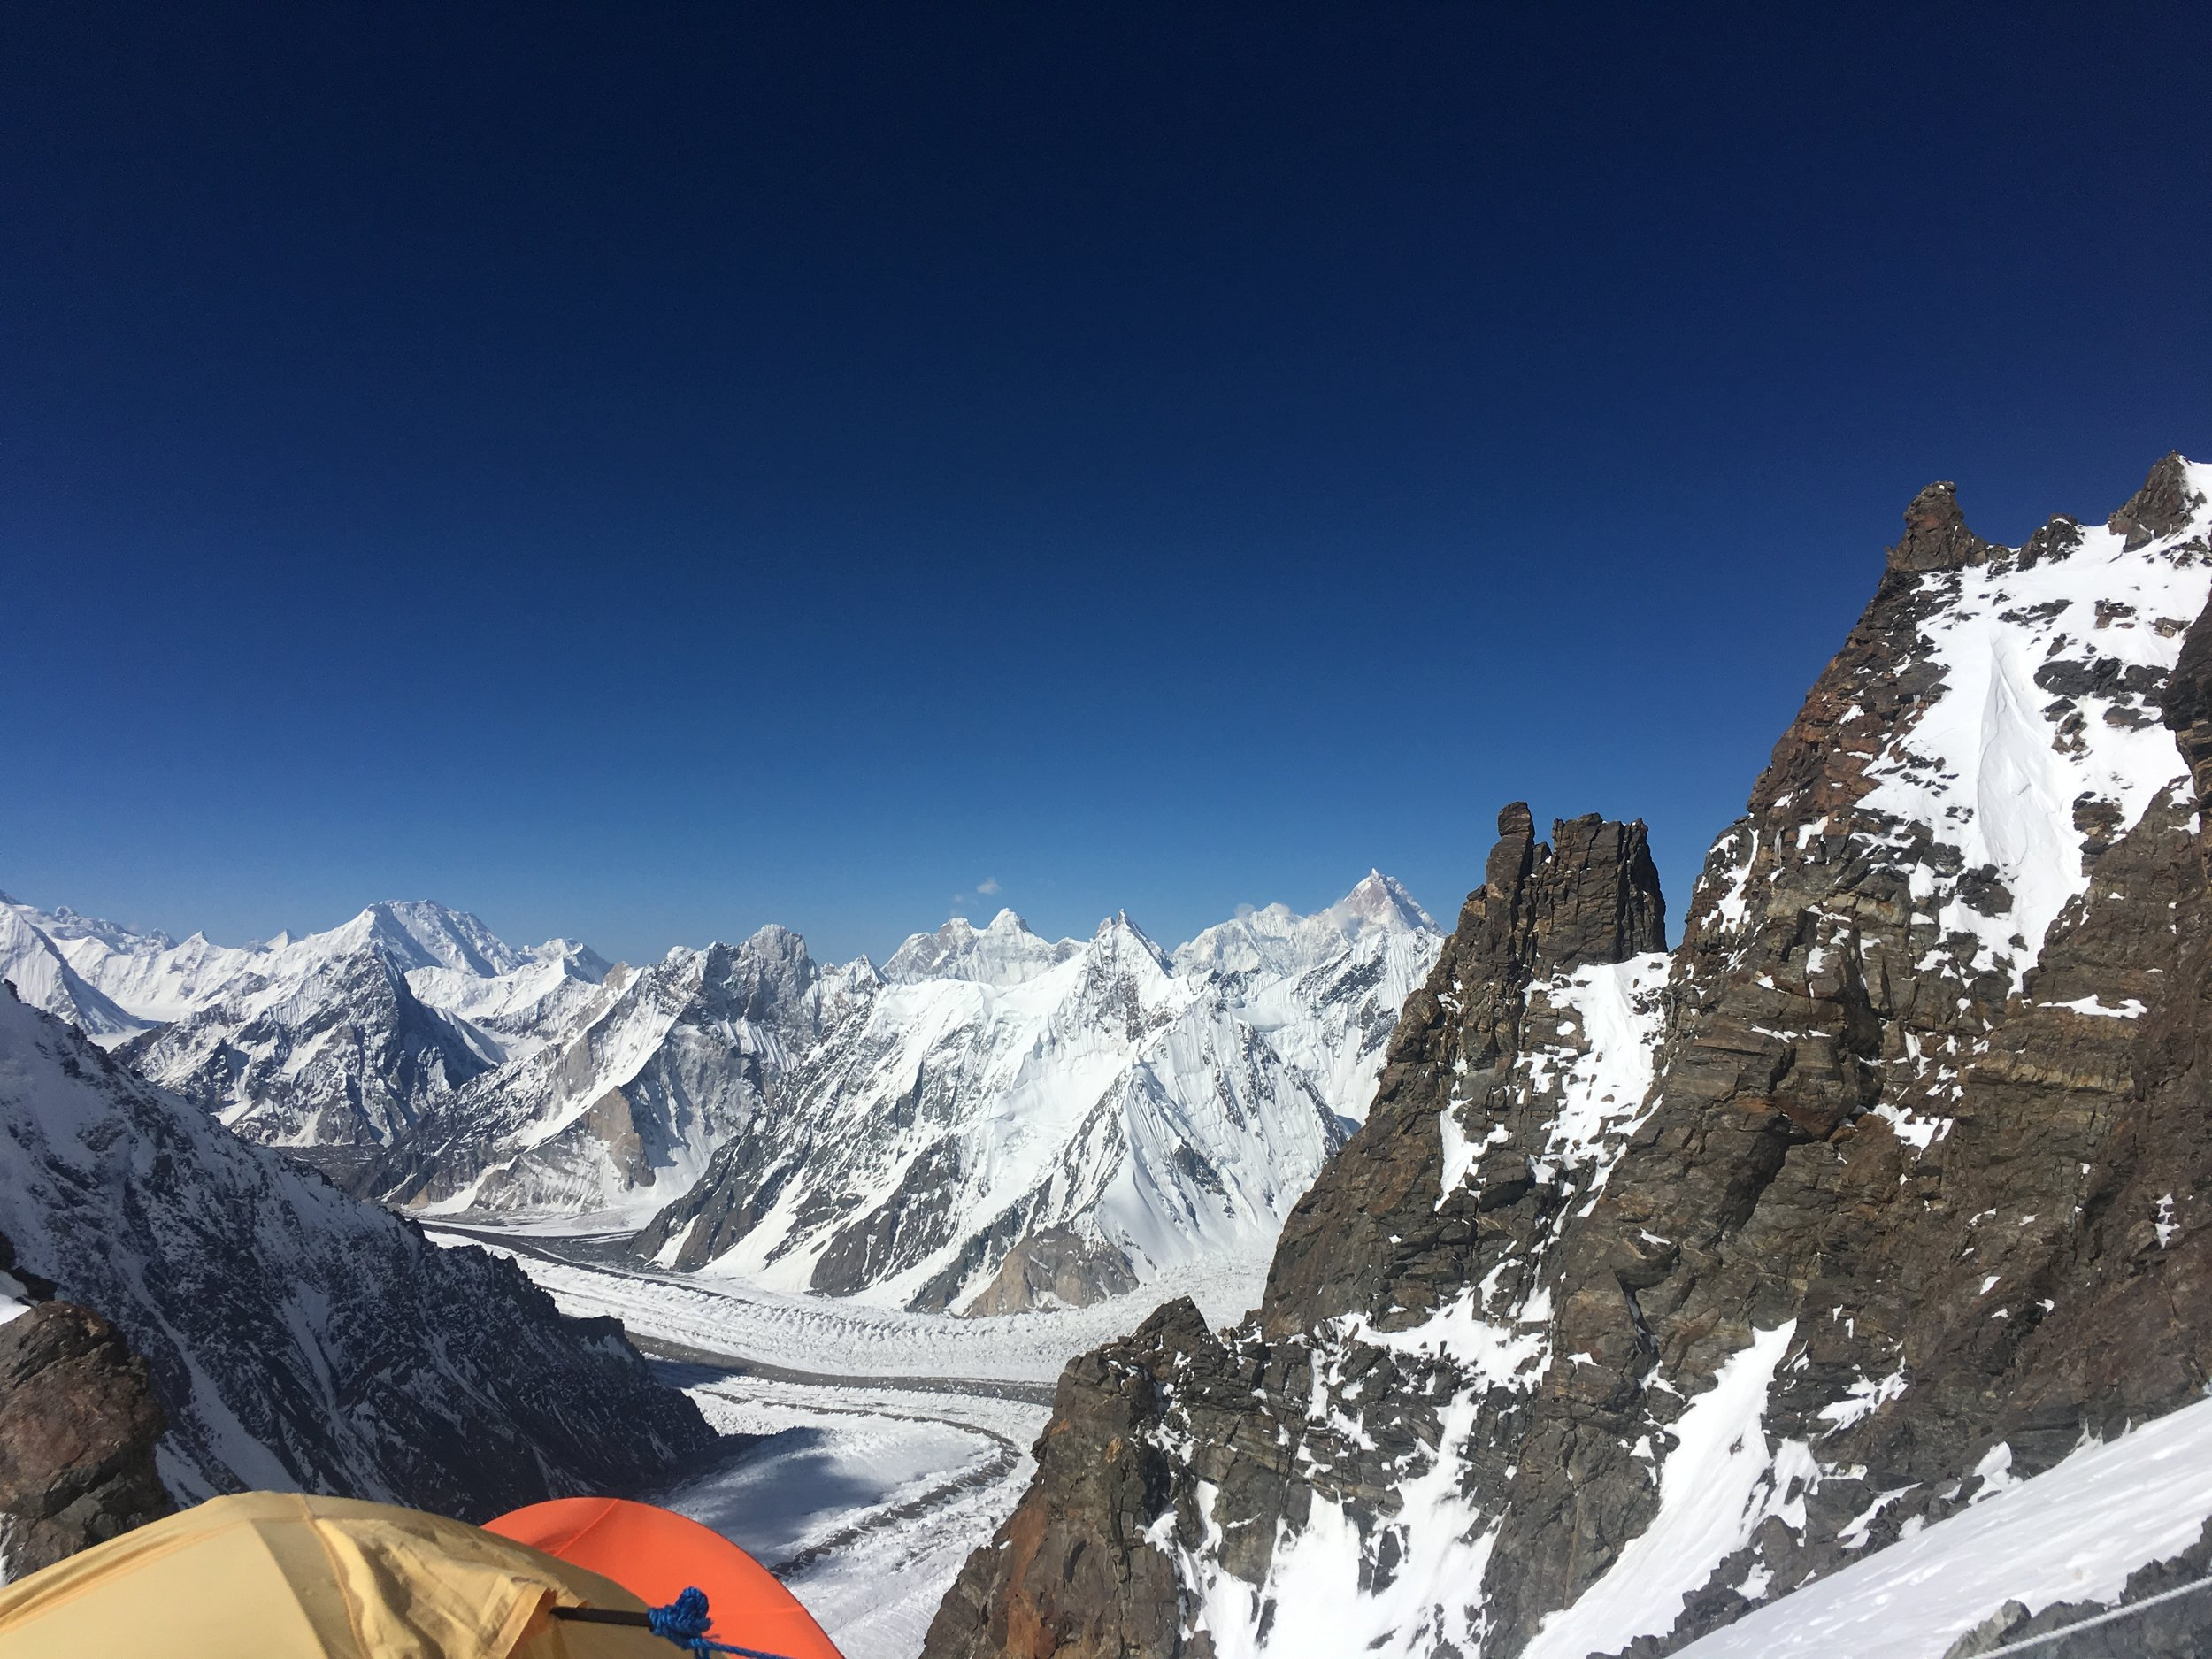 View from camp 1 19,700 feet